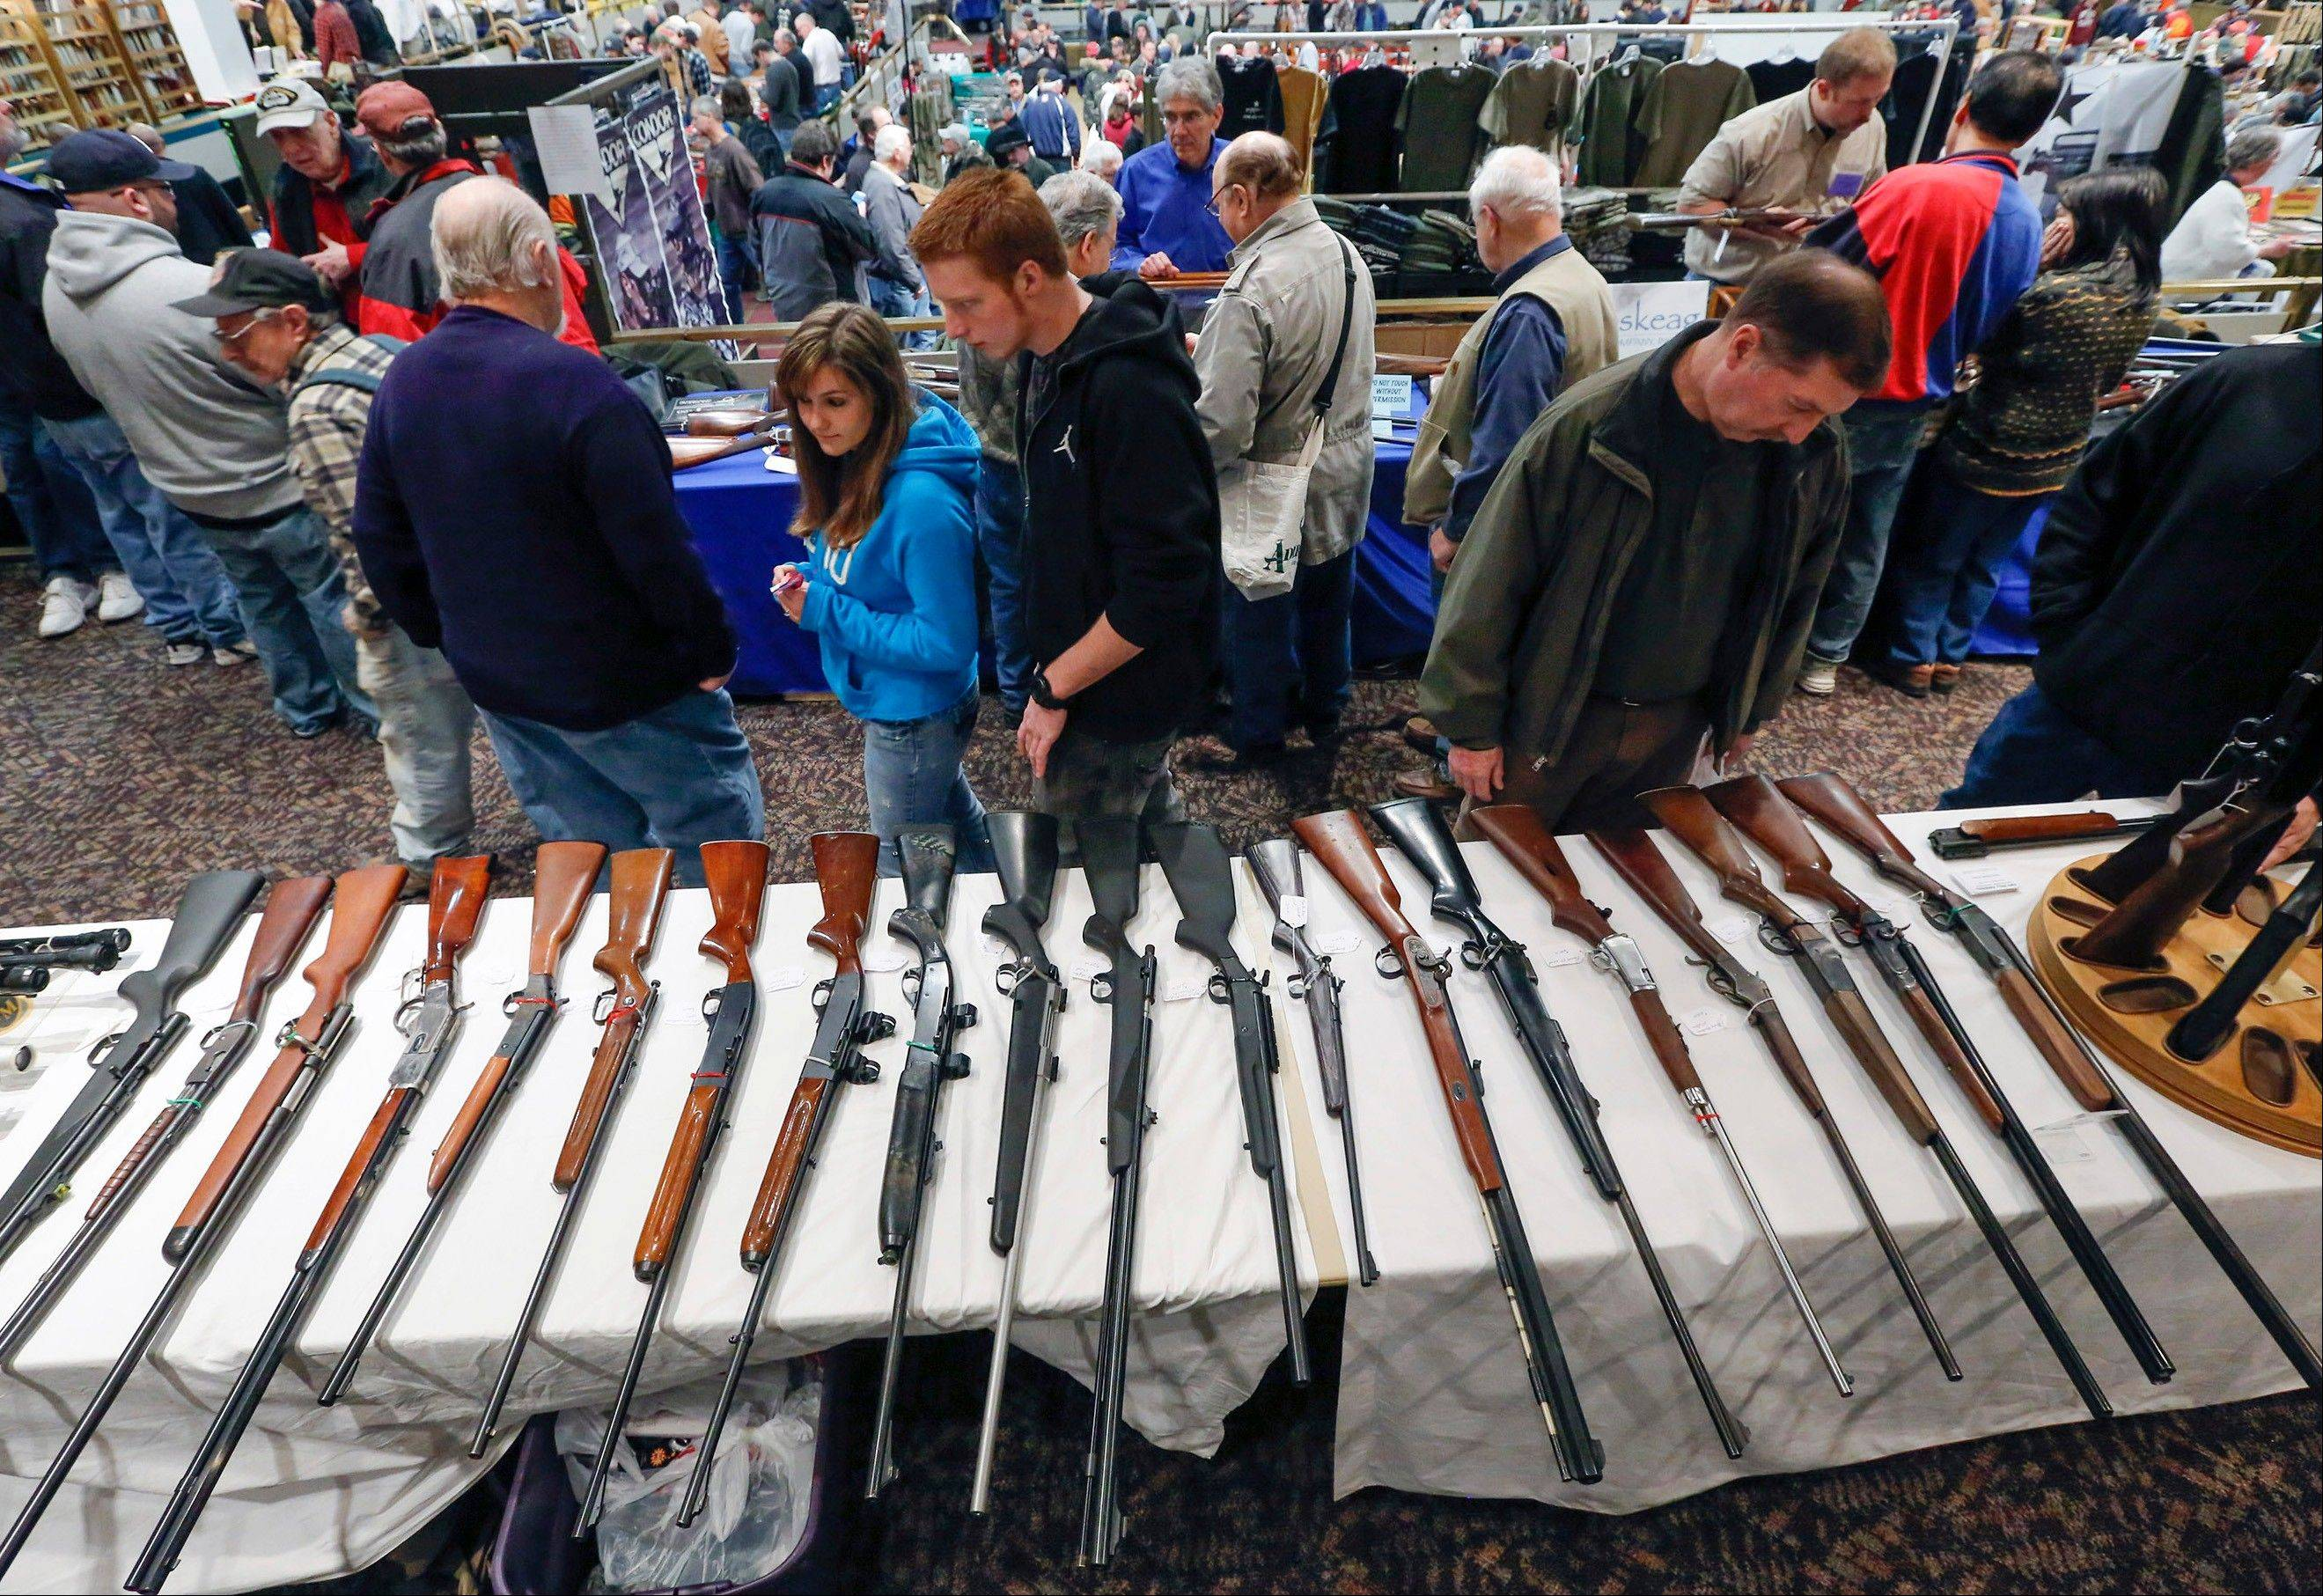 Guns are displayed on a table on display during the annual New York State Arms Collectors Association Albany Gun Show in Albany, N.Y., Jan. 26.